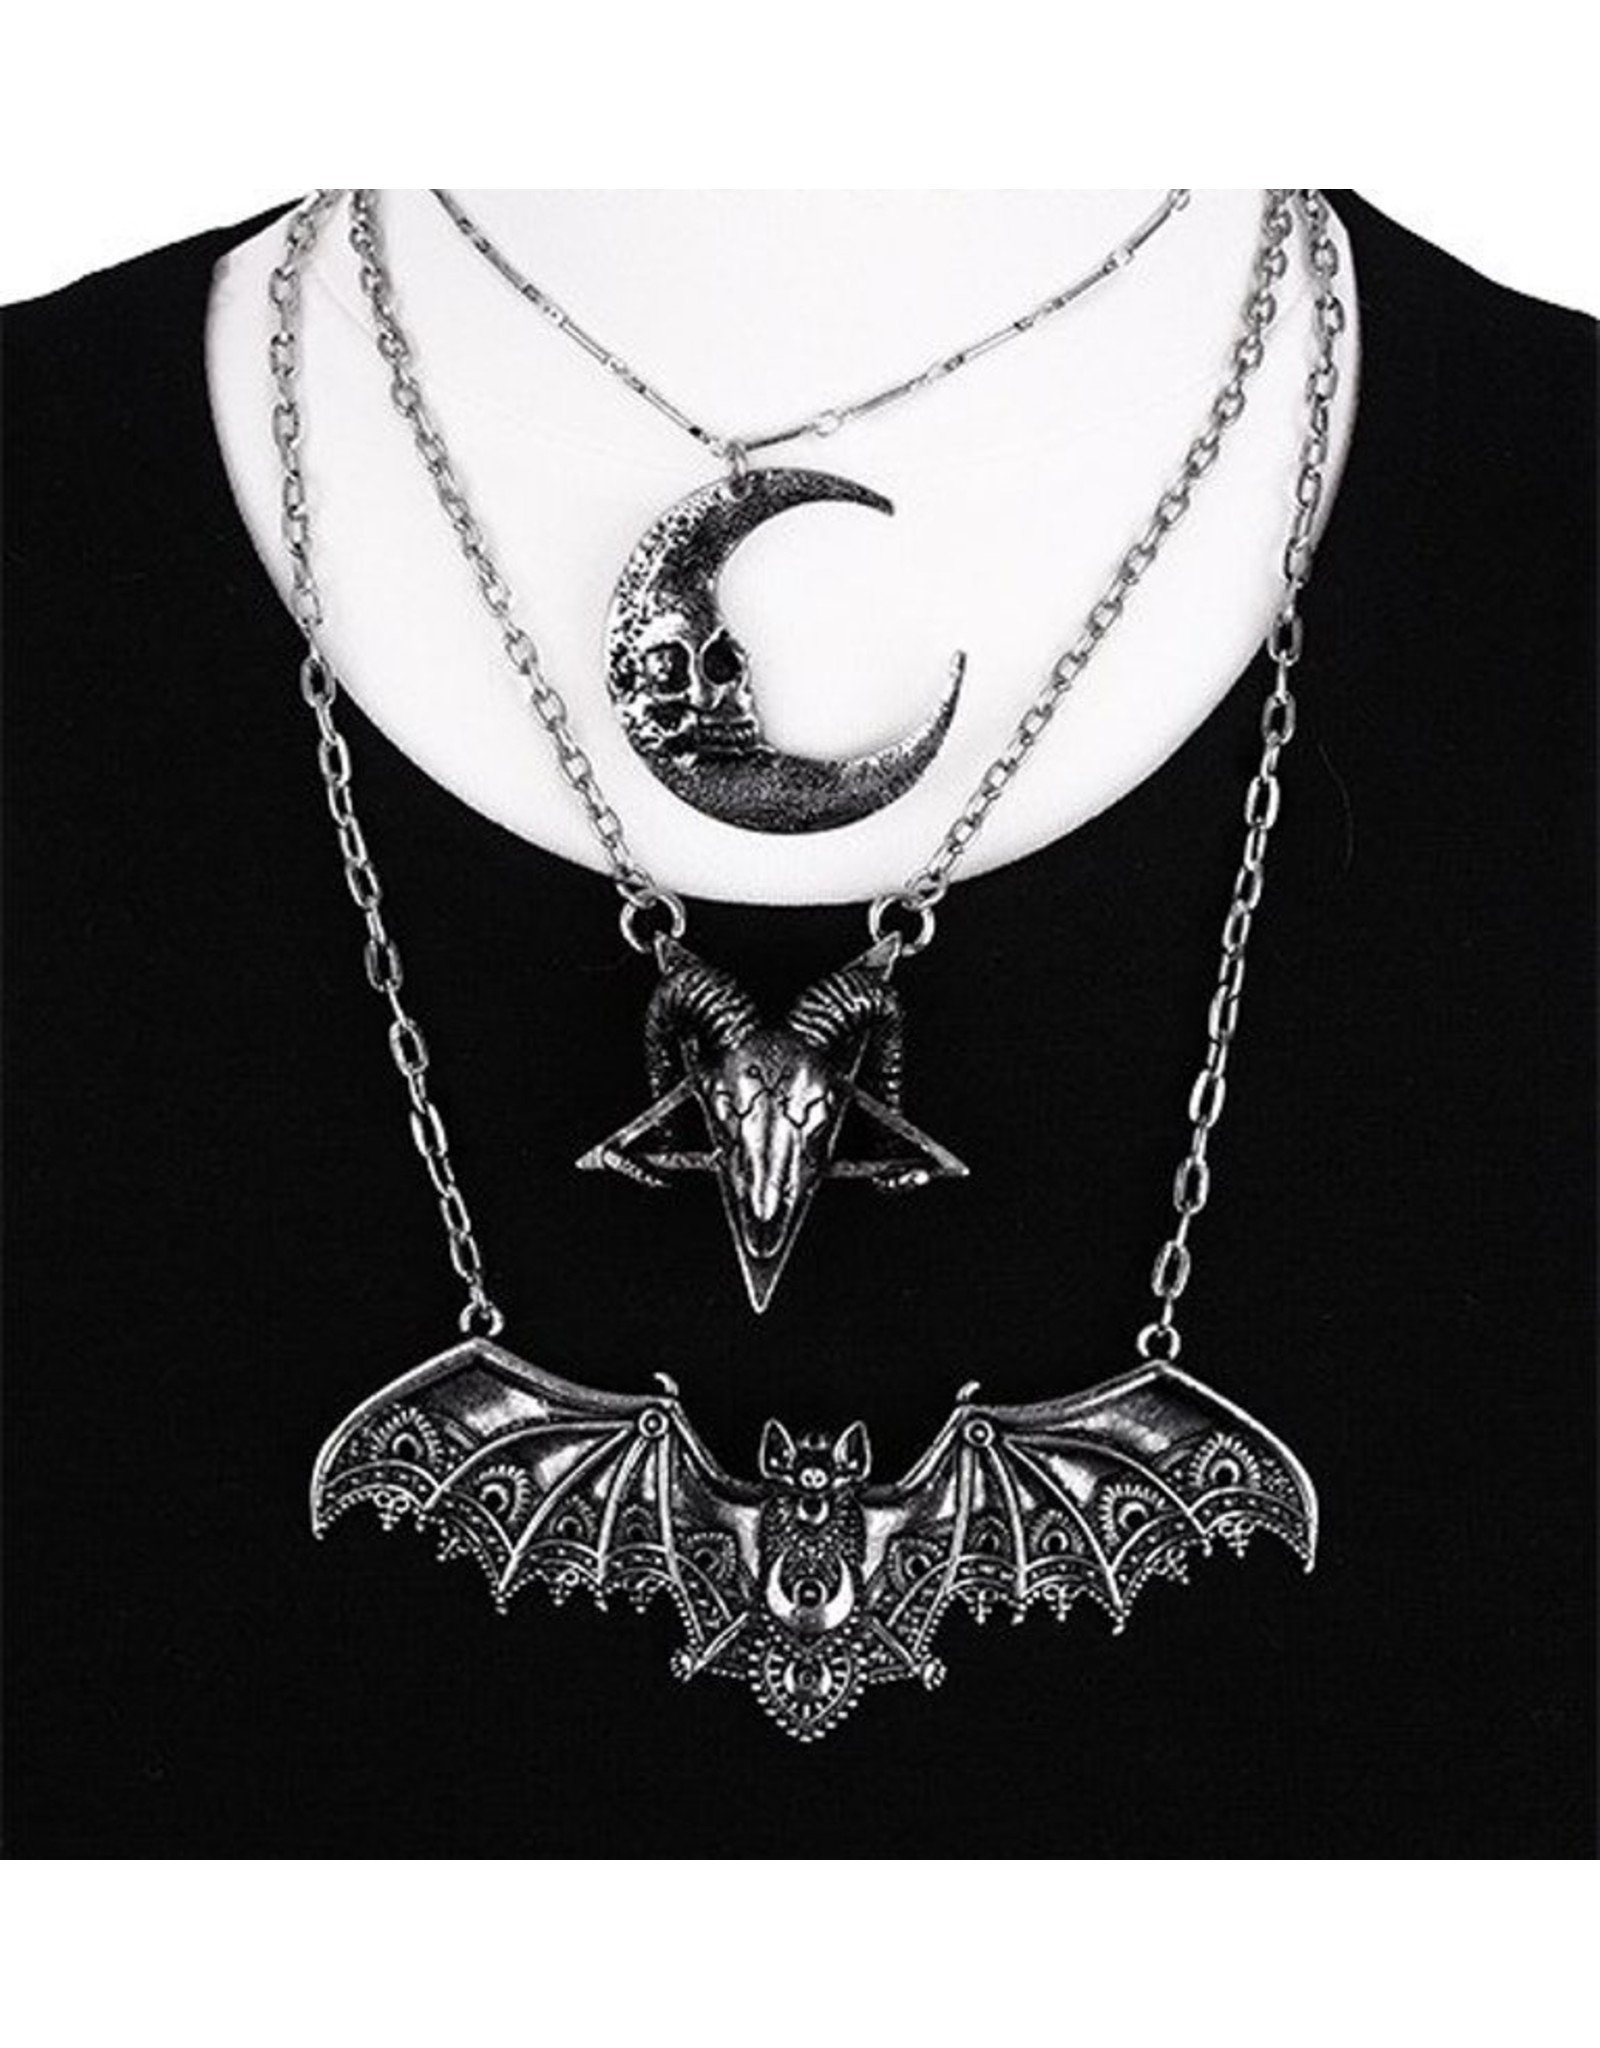 Restyle Gothic accessories - Gothic necklace with Lace Bat pendant